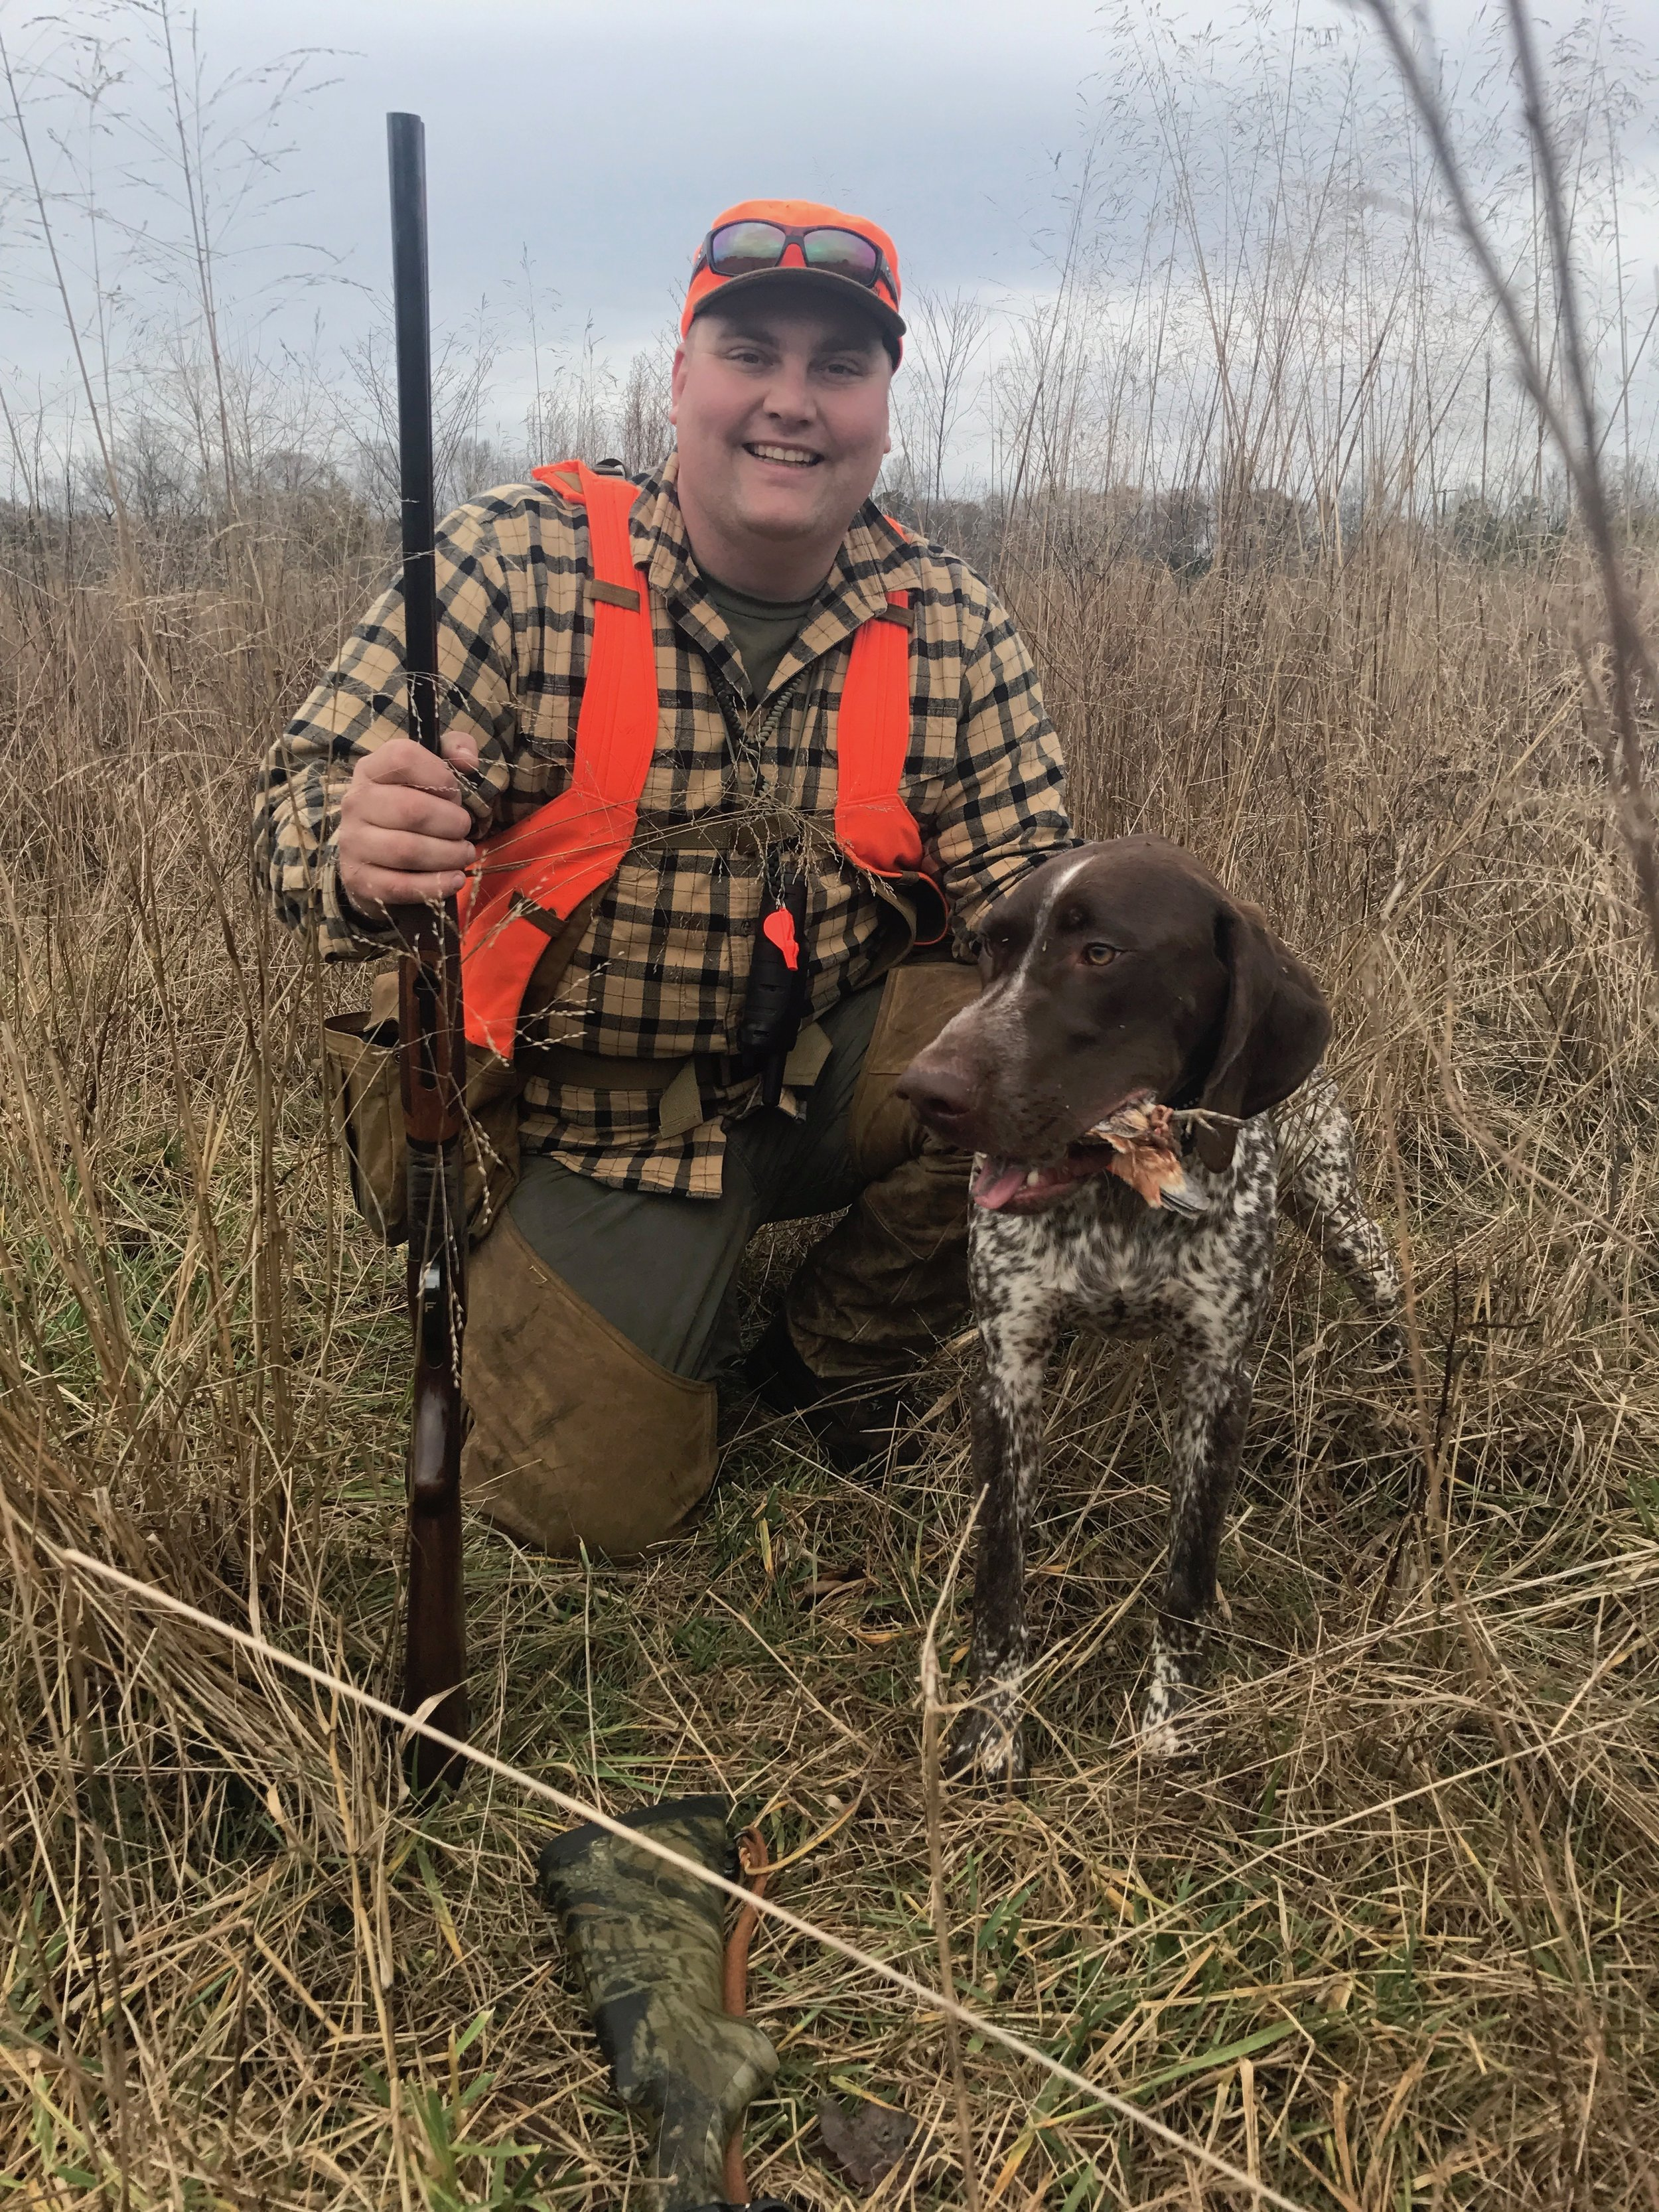 The owner of Shoot to Thrill Kennels, Jon Hensen with his male German Shorthaired Pointer Jackson on a wild quail hunt in Virginia.